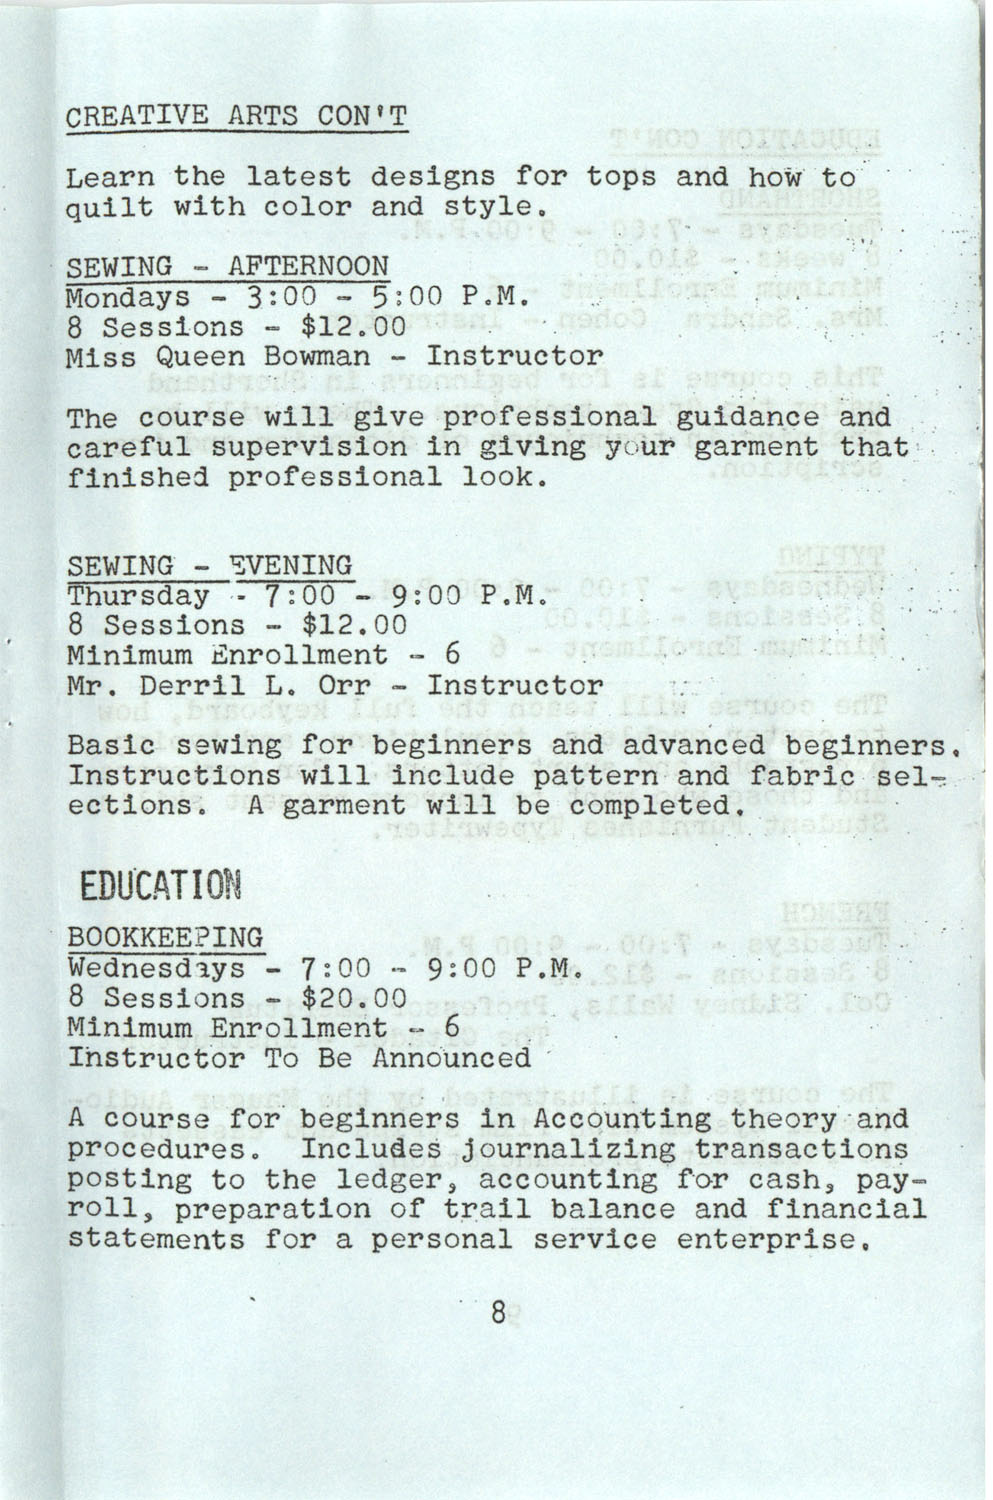 YWCA Spring 1975 Schedule, Page 8